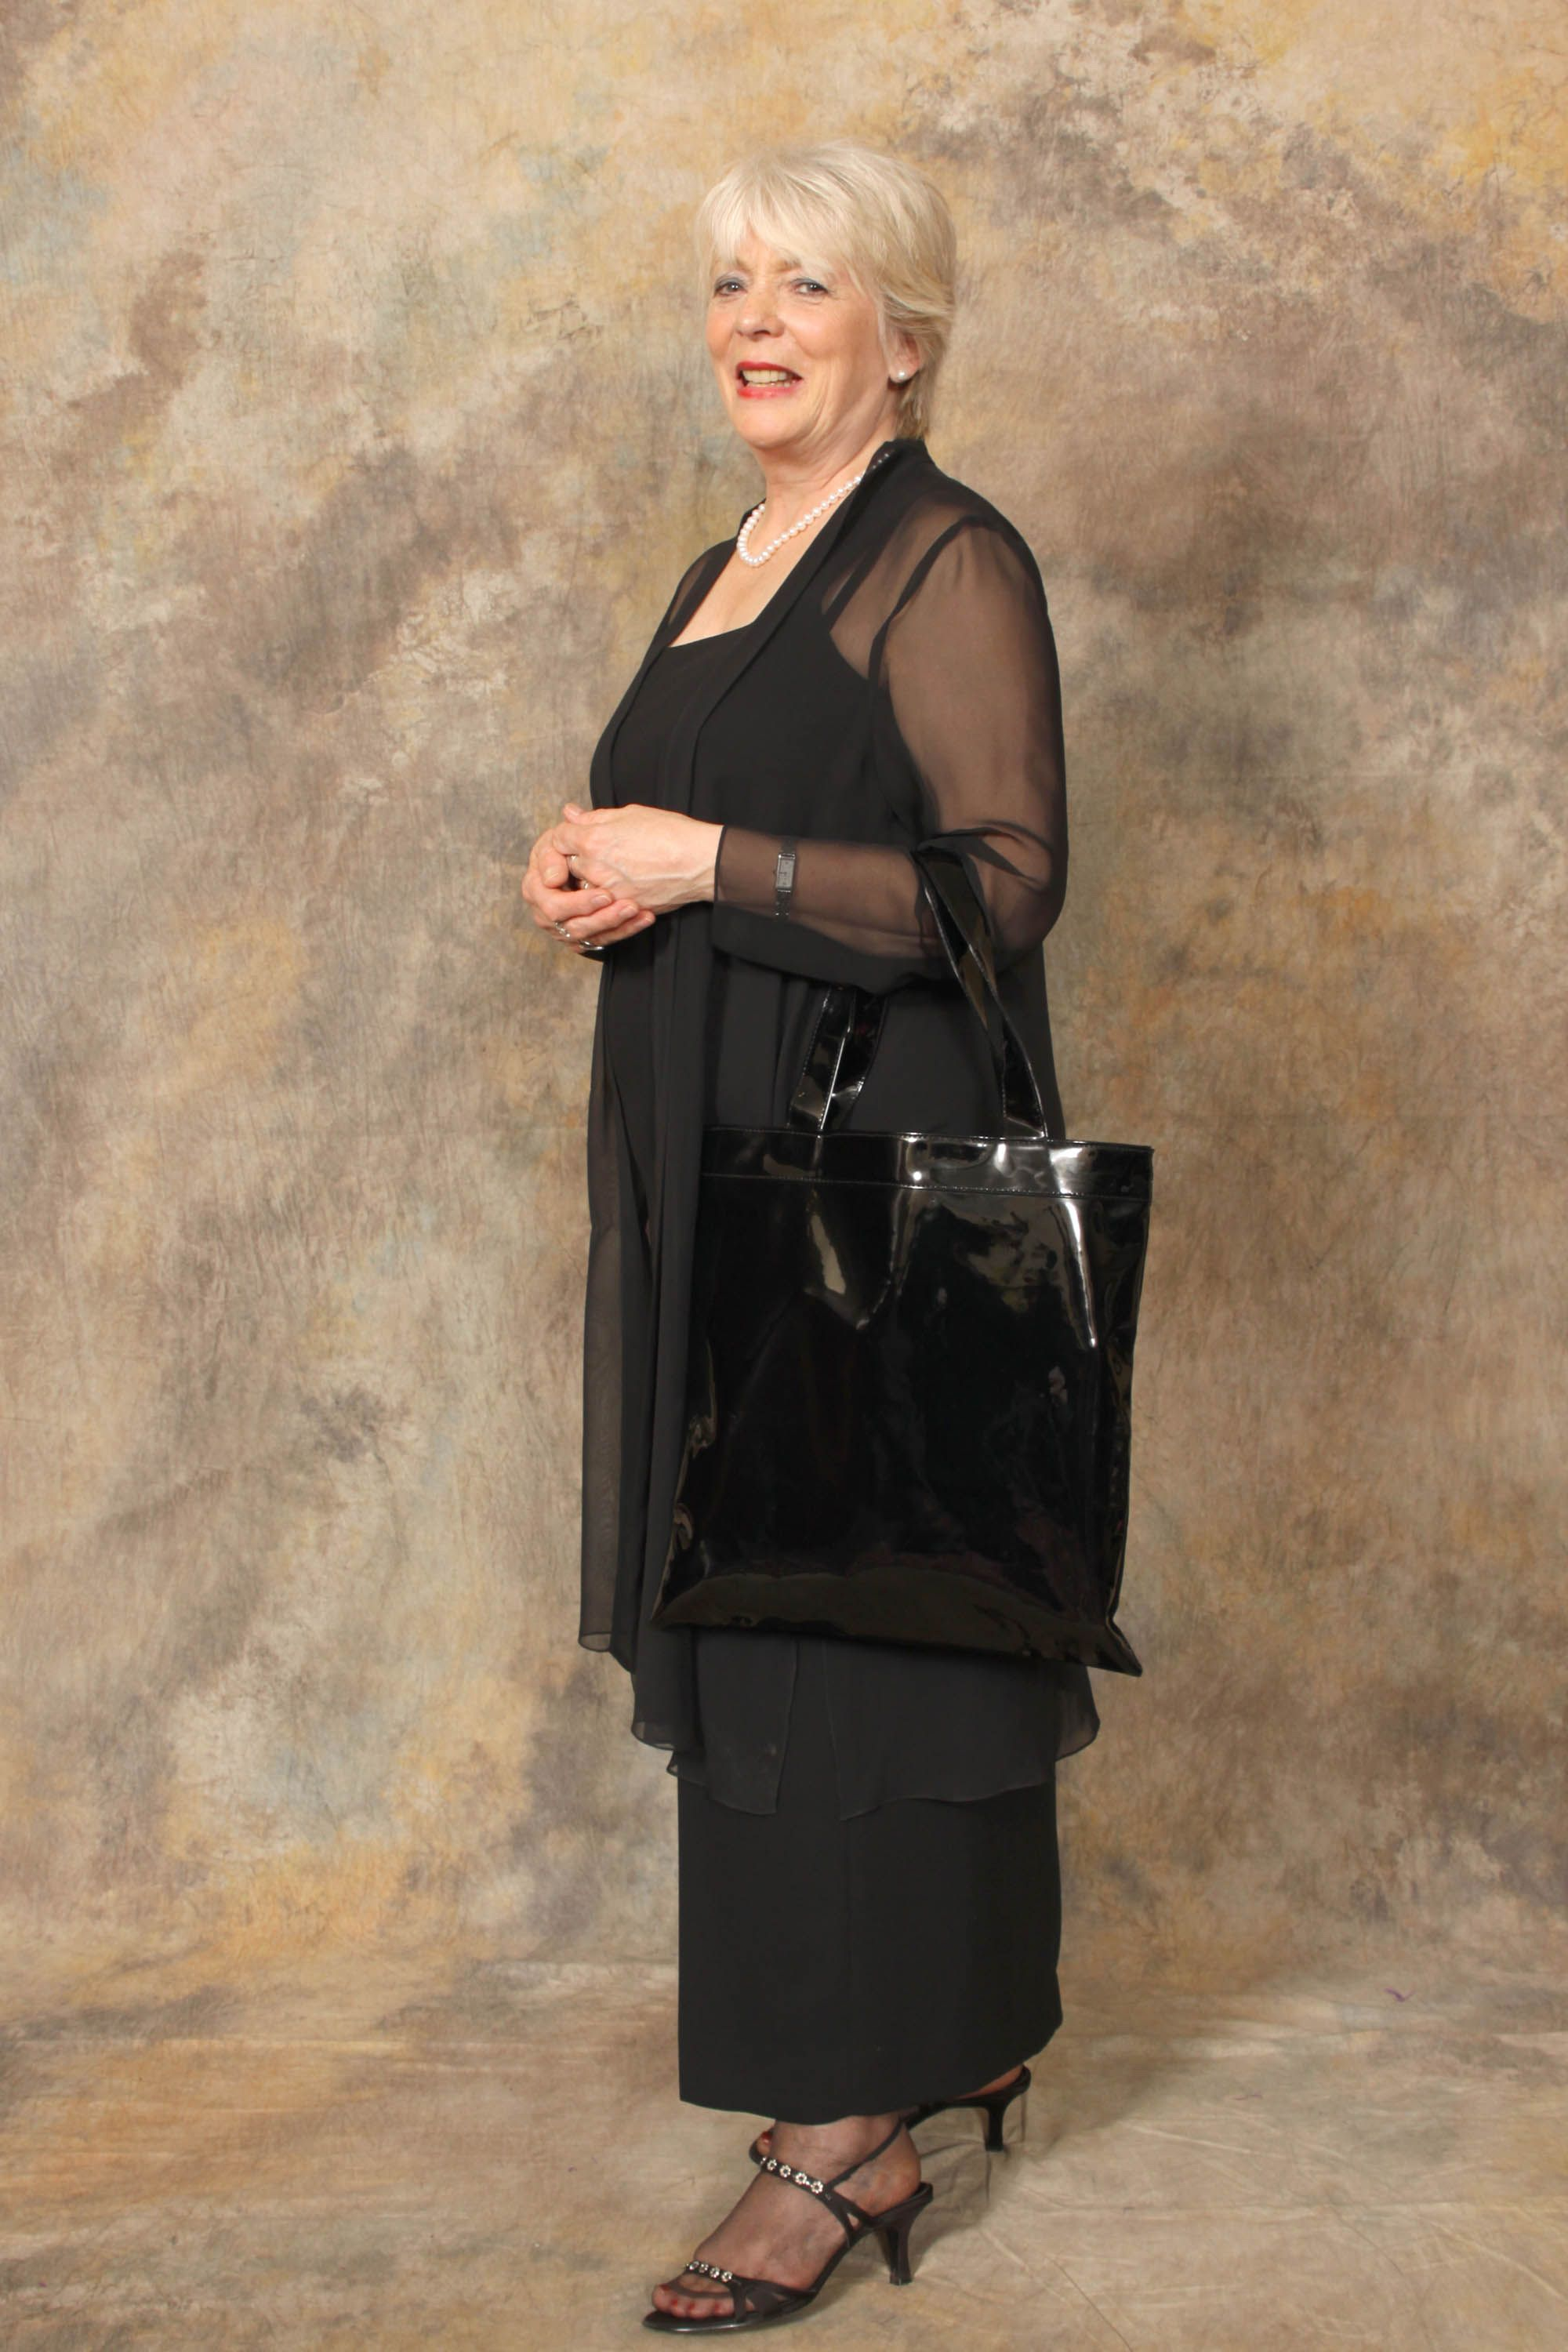 """Alison Steadman Movies And Tv Shows take this bag out shopping and see the heads turn!"""" - alison"""